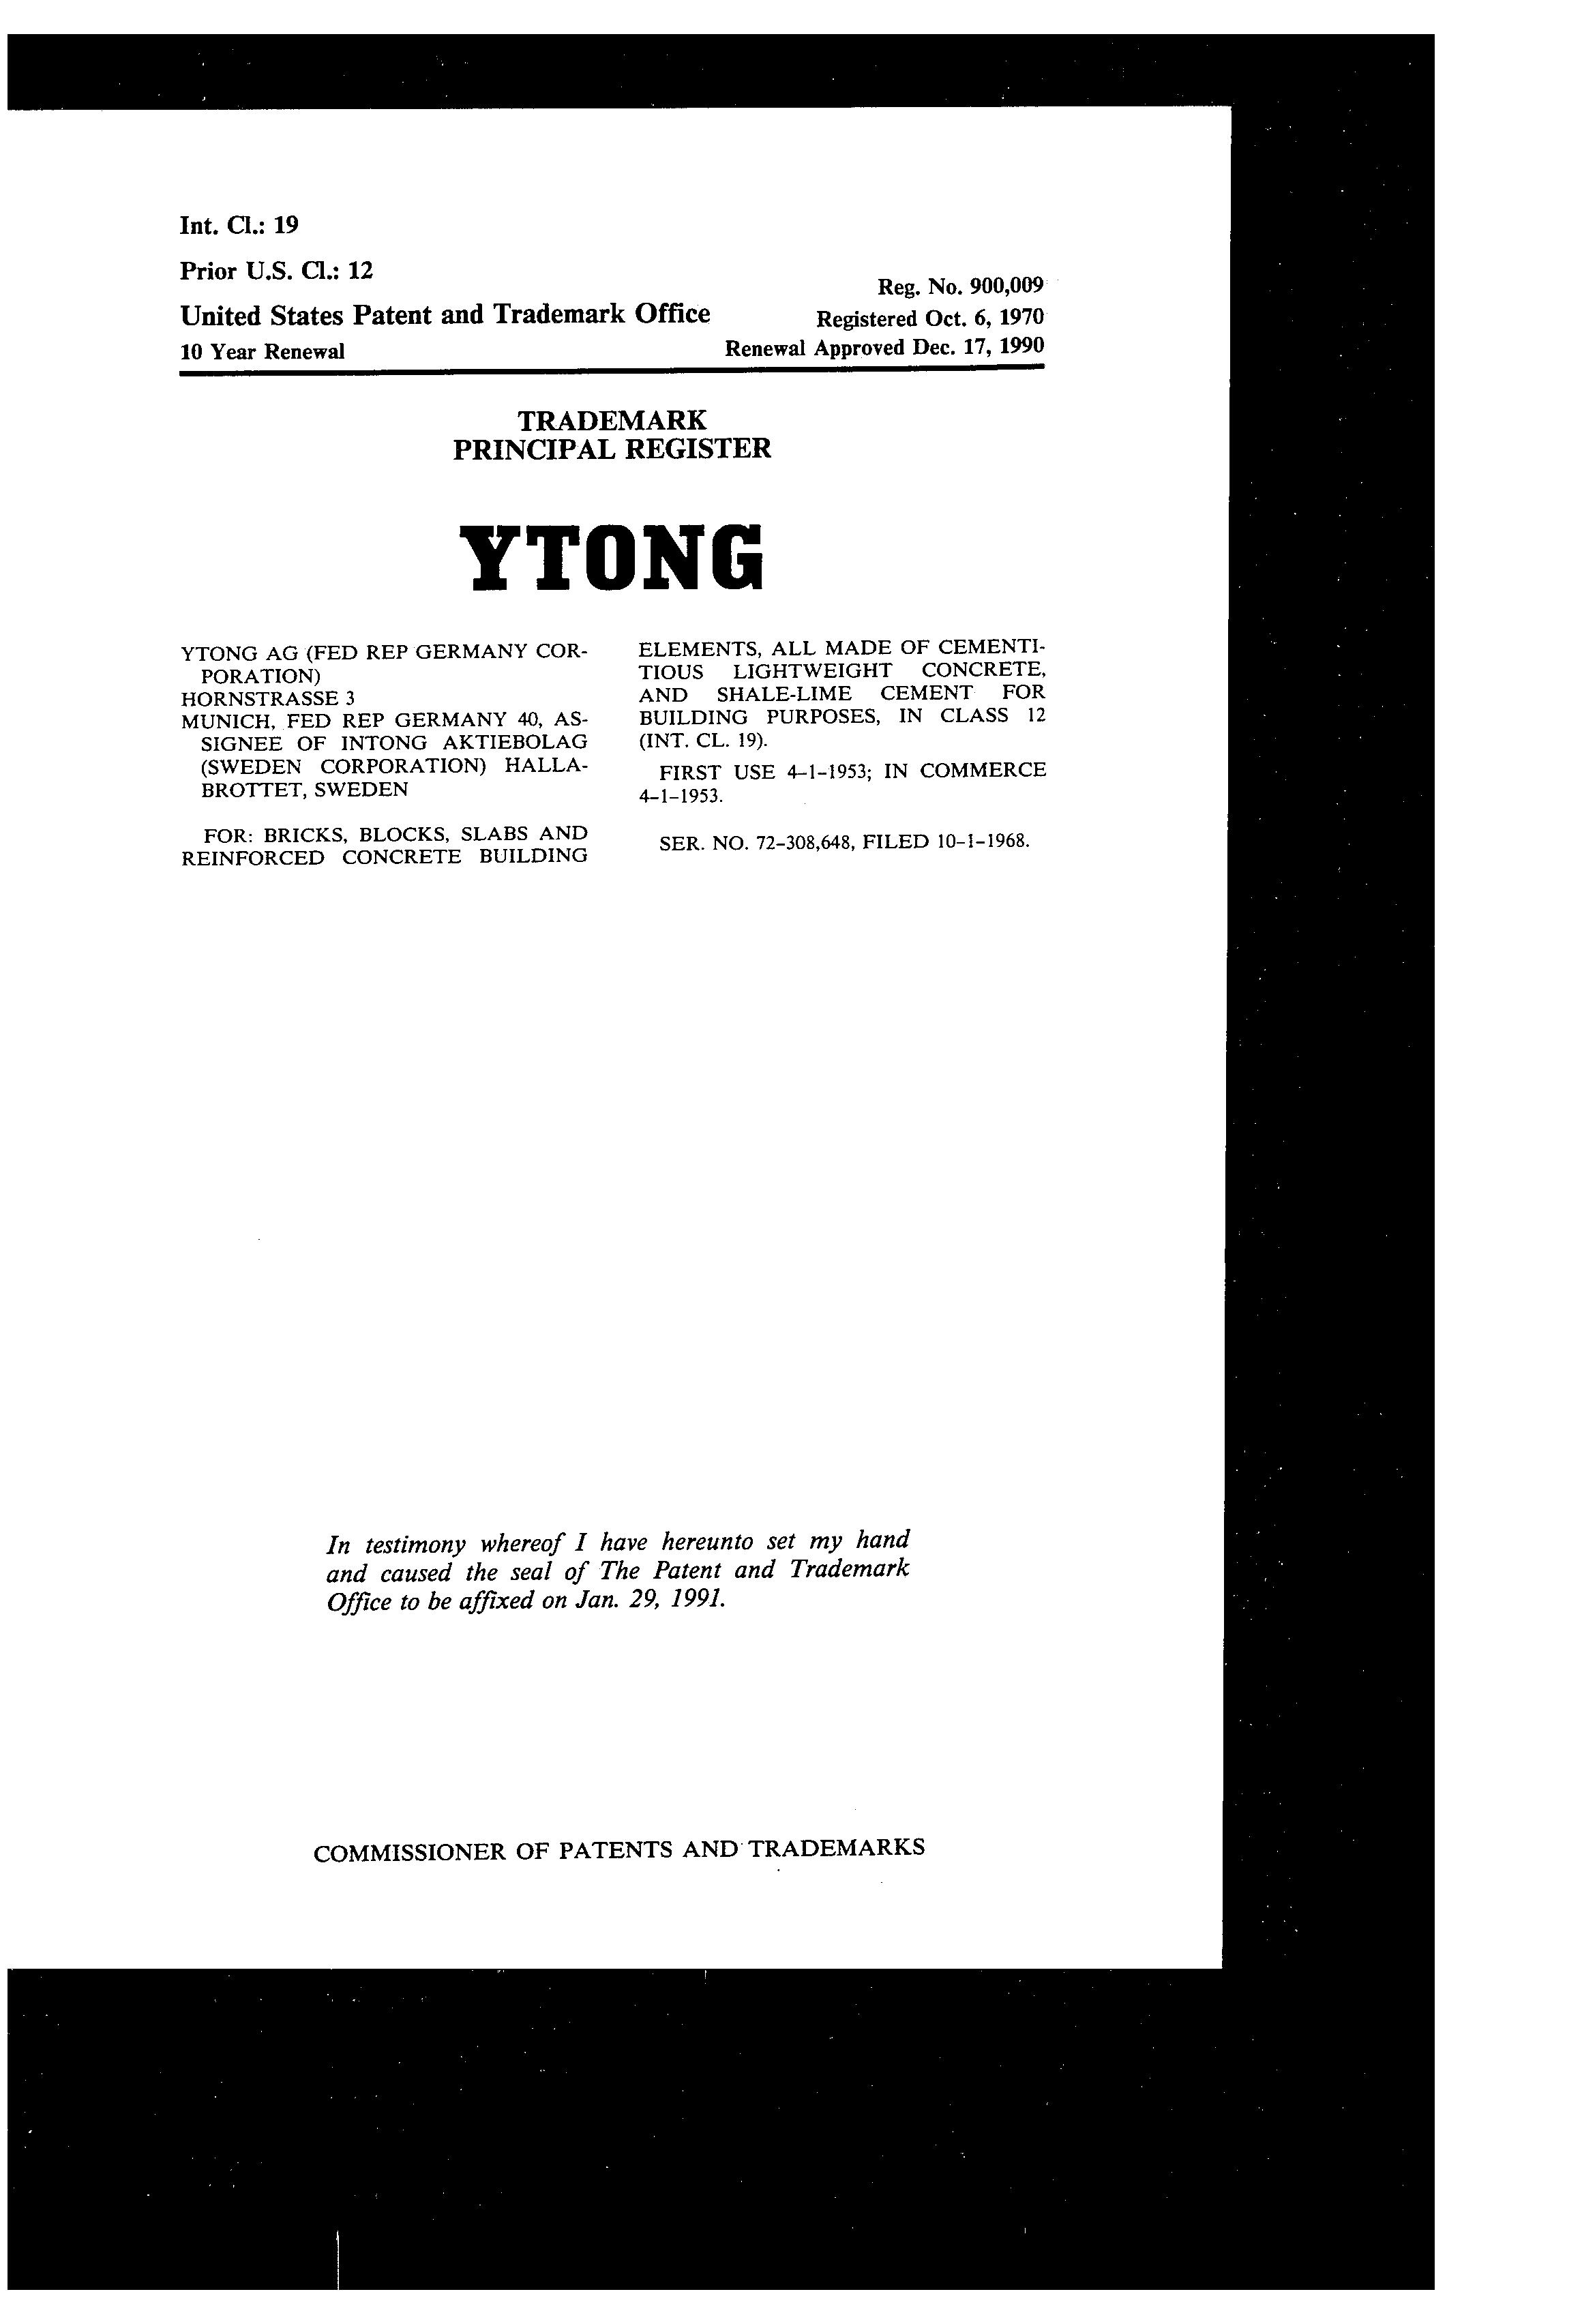 YTONG Details, a Report by Trademark Bank | Calendar Your